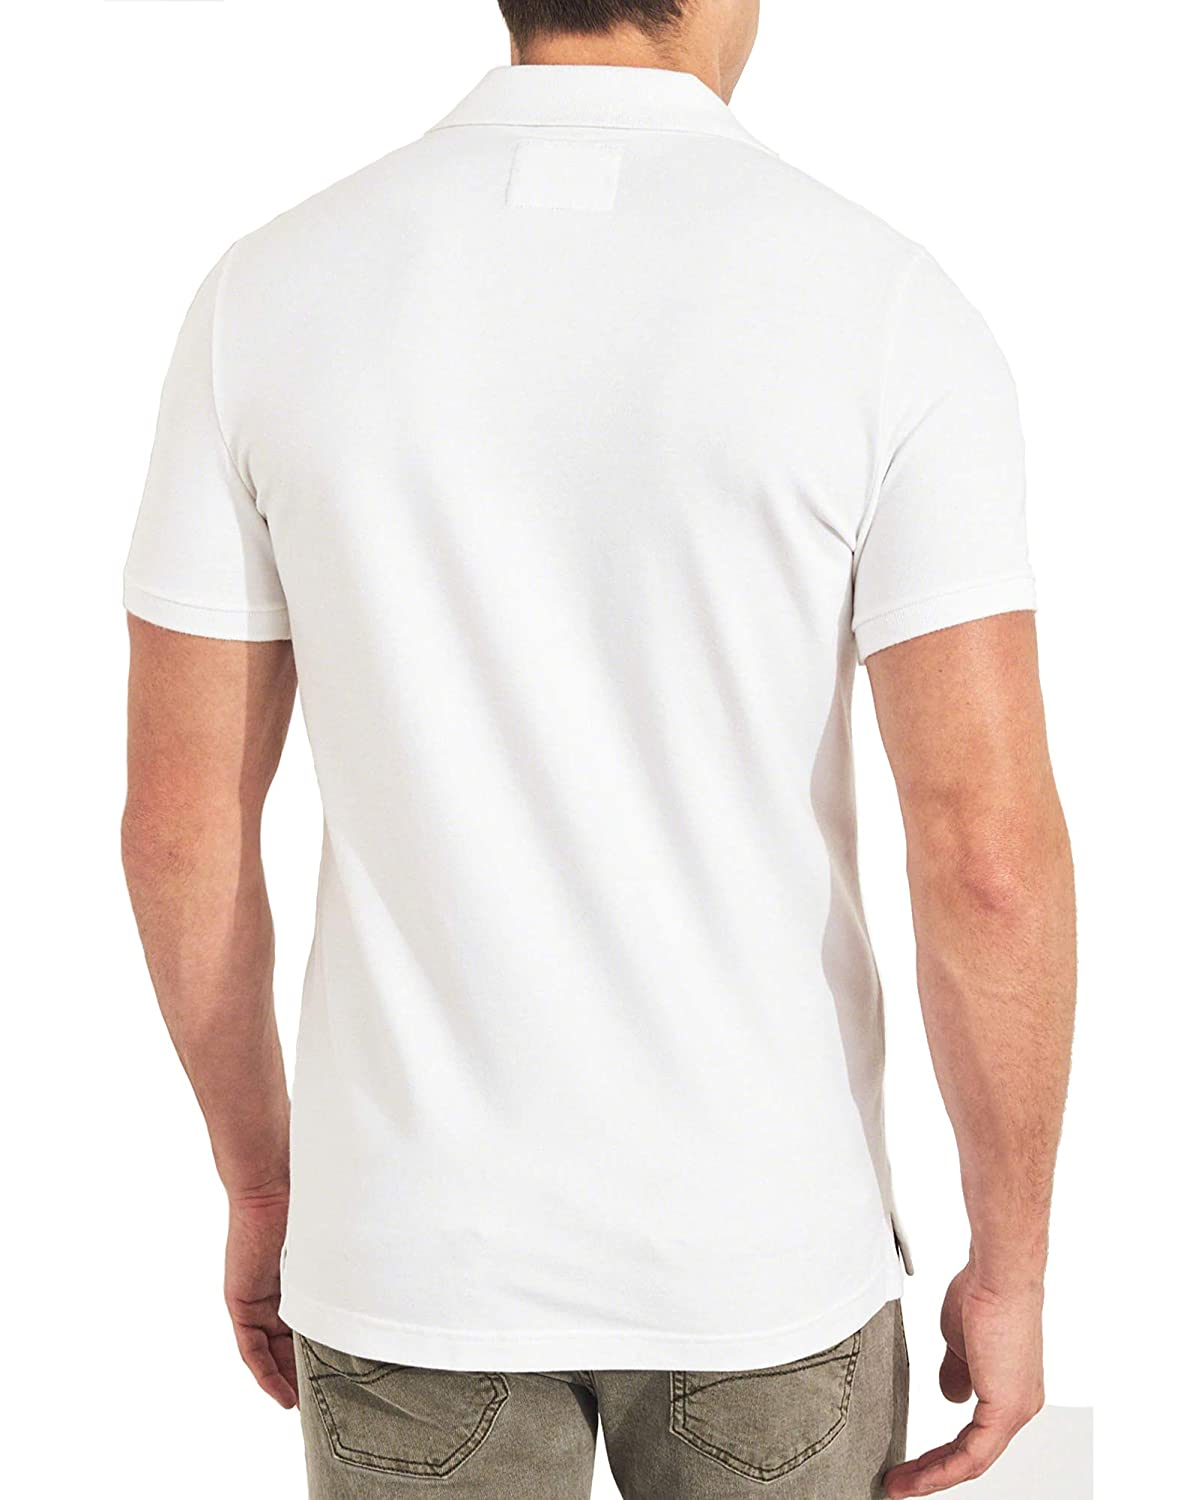 4d0d4454 Hollister Men's White Muscle Fit Polo Shirts Medium at Amazon Men's  Clothing store: